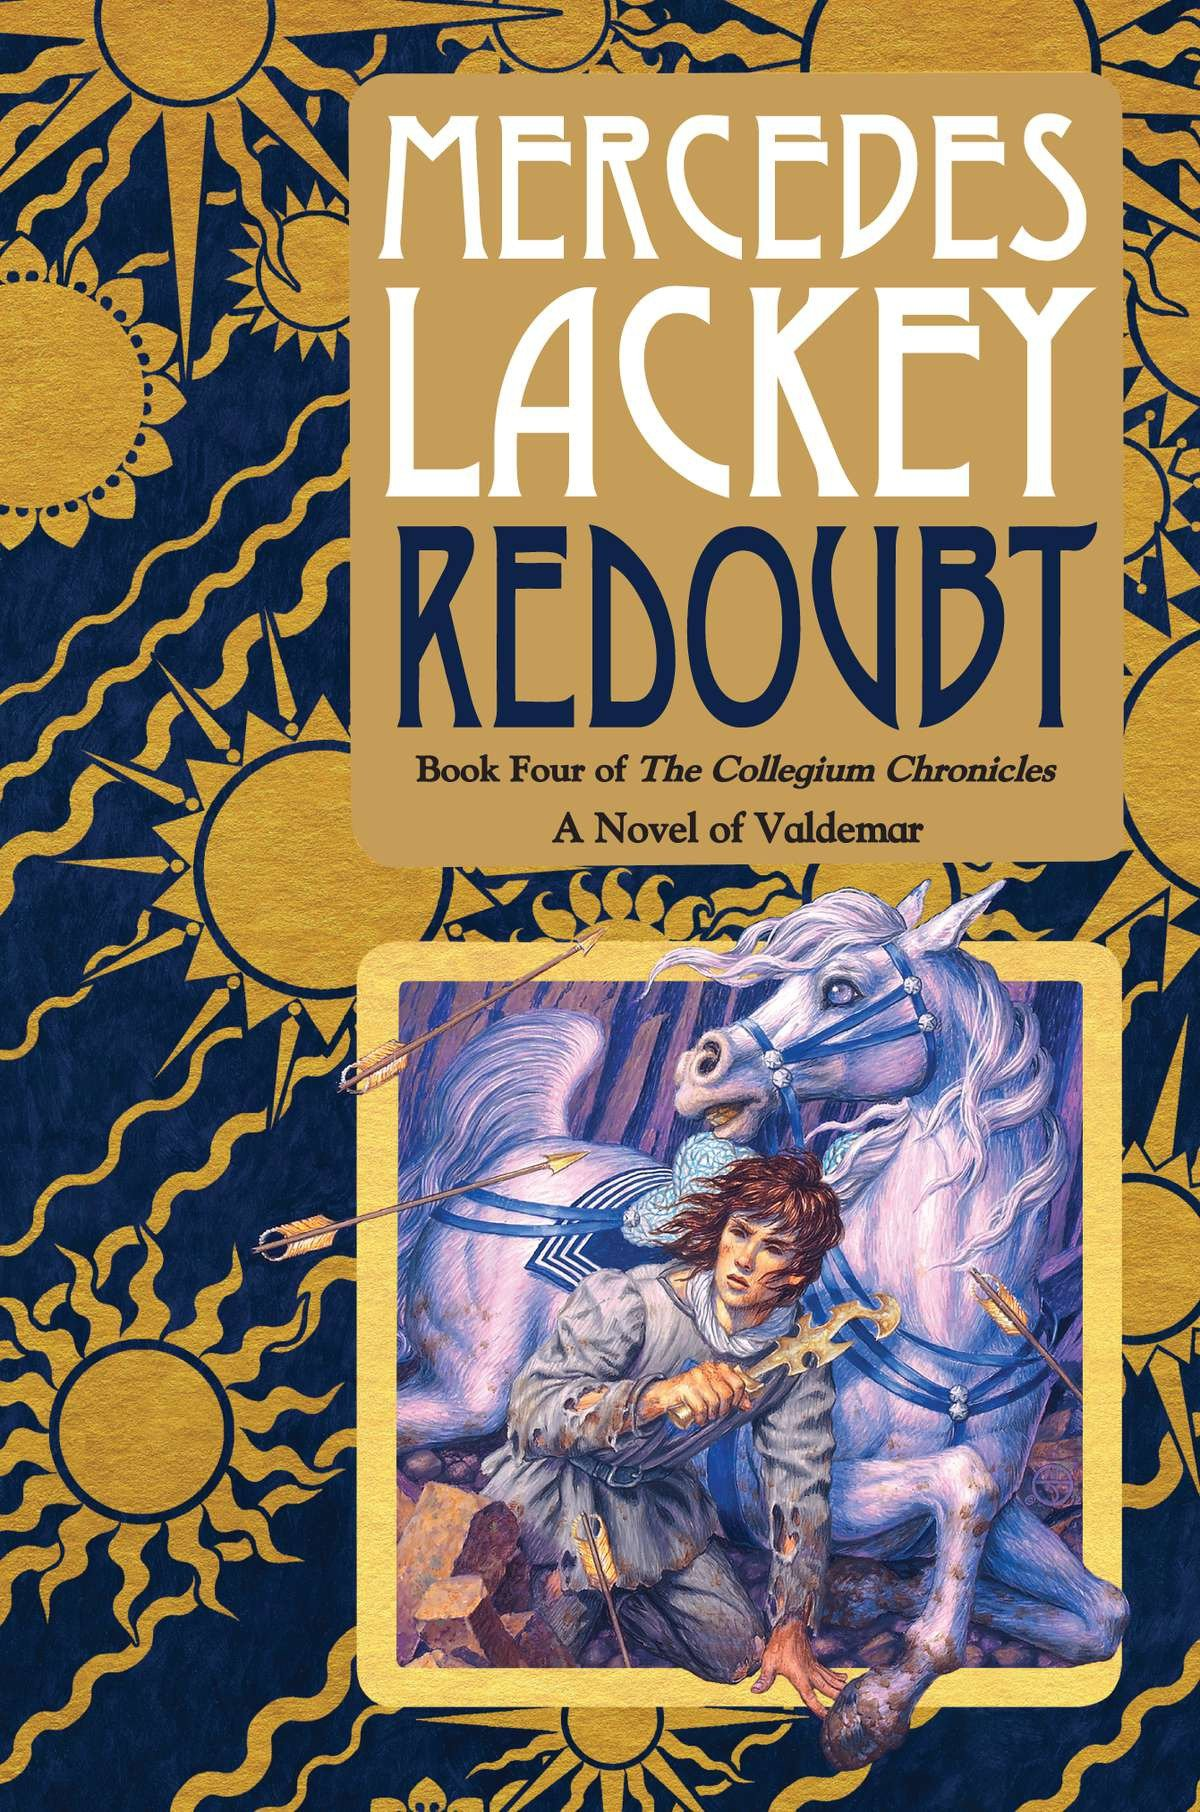 Redoubt cover image